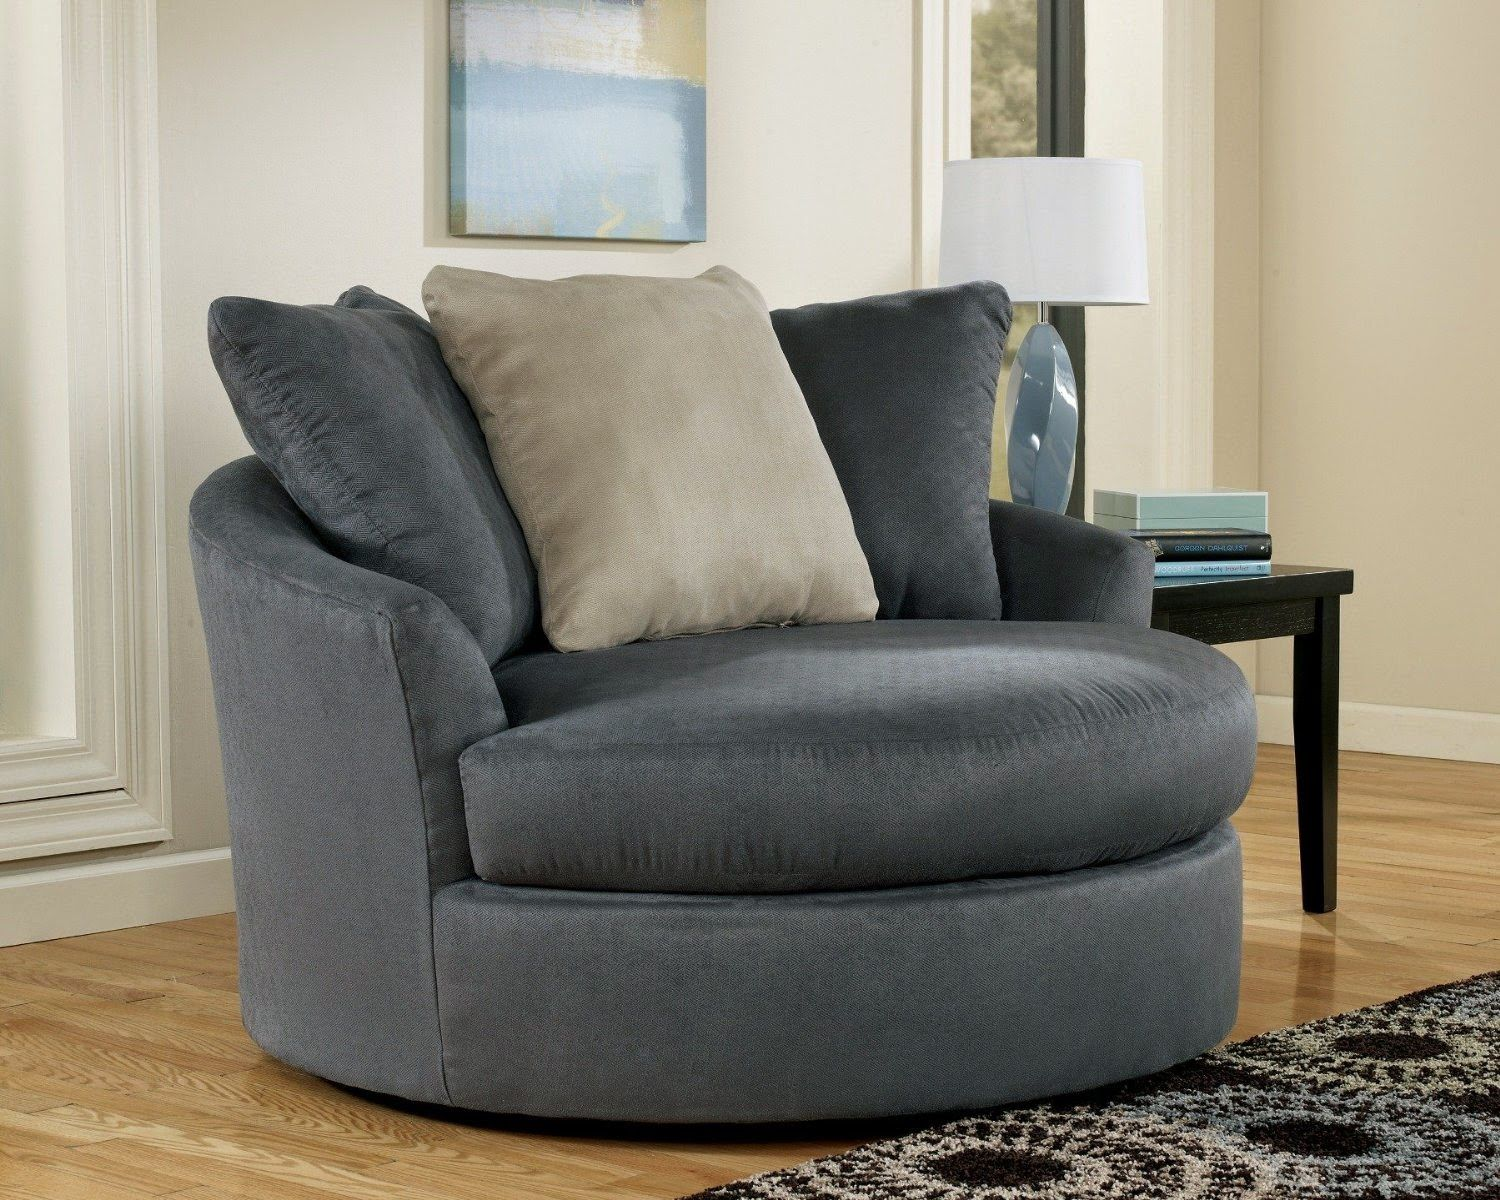 Designer Swivel Chairs For Living Room Cuddle Couch Cuddle Couch For Sale  Shopping  Pinterest